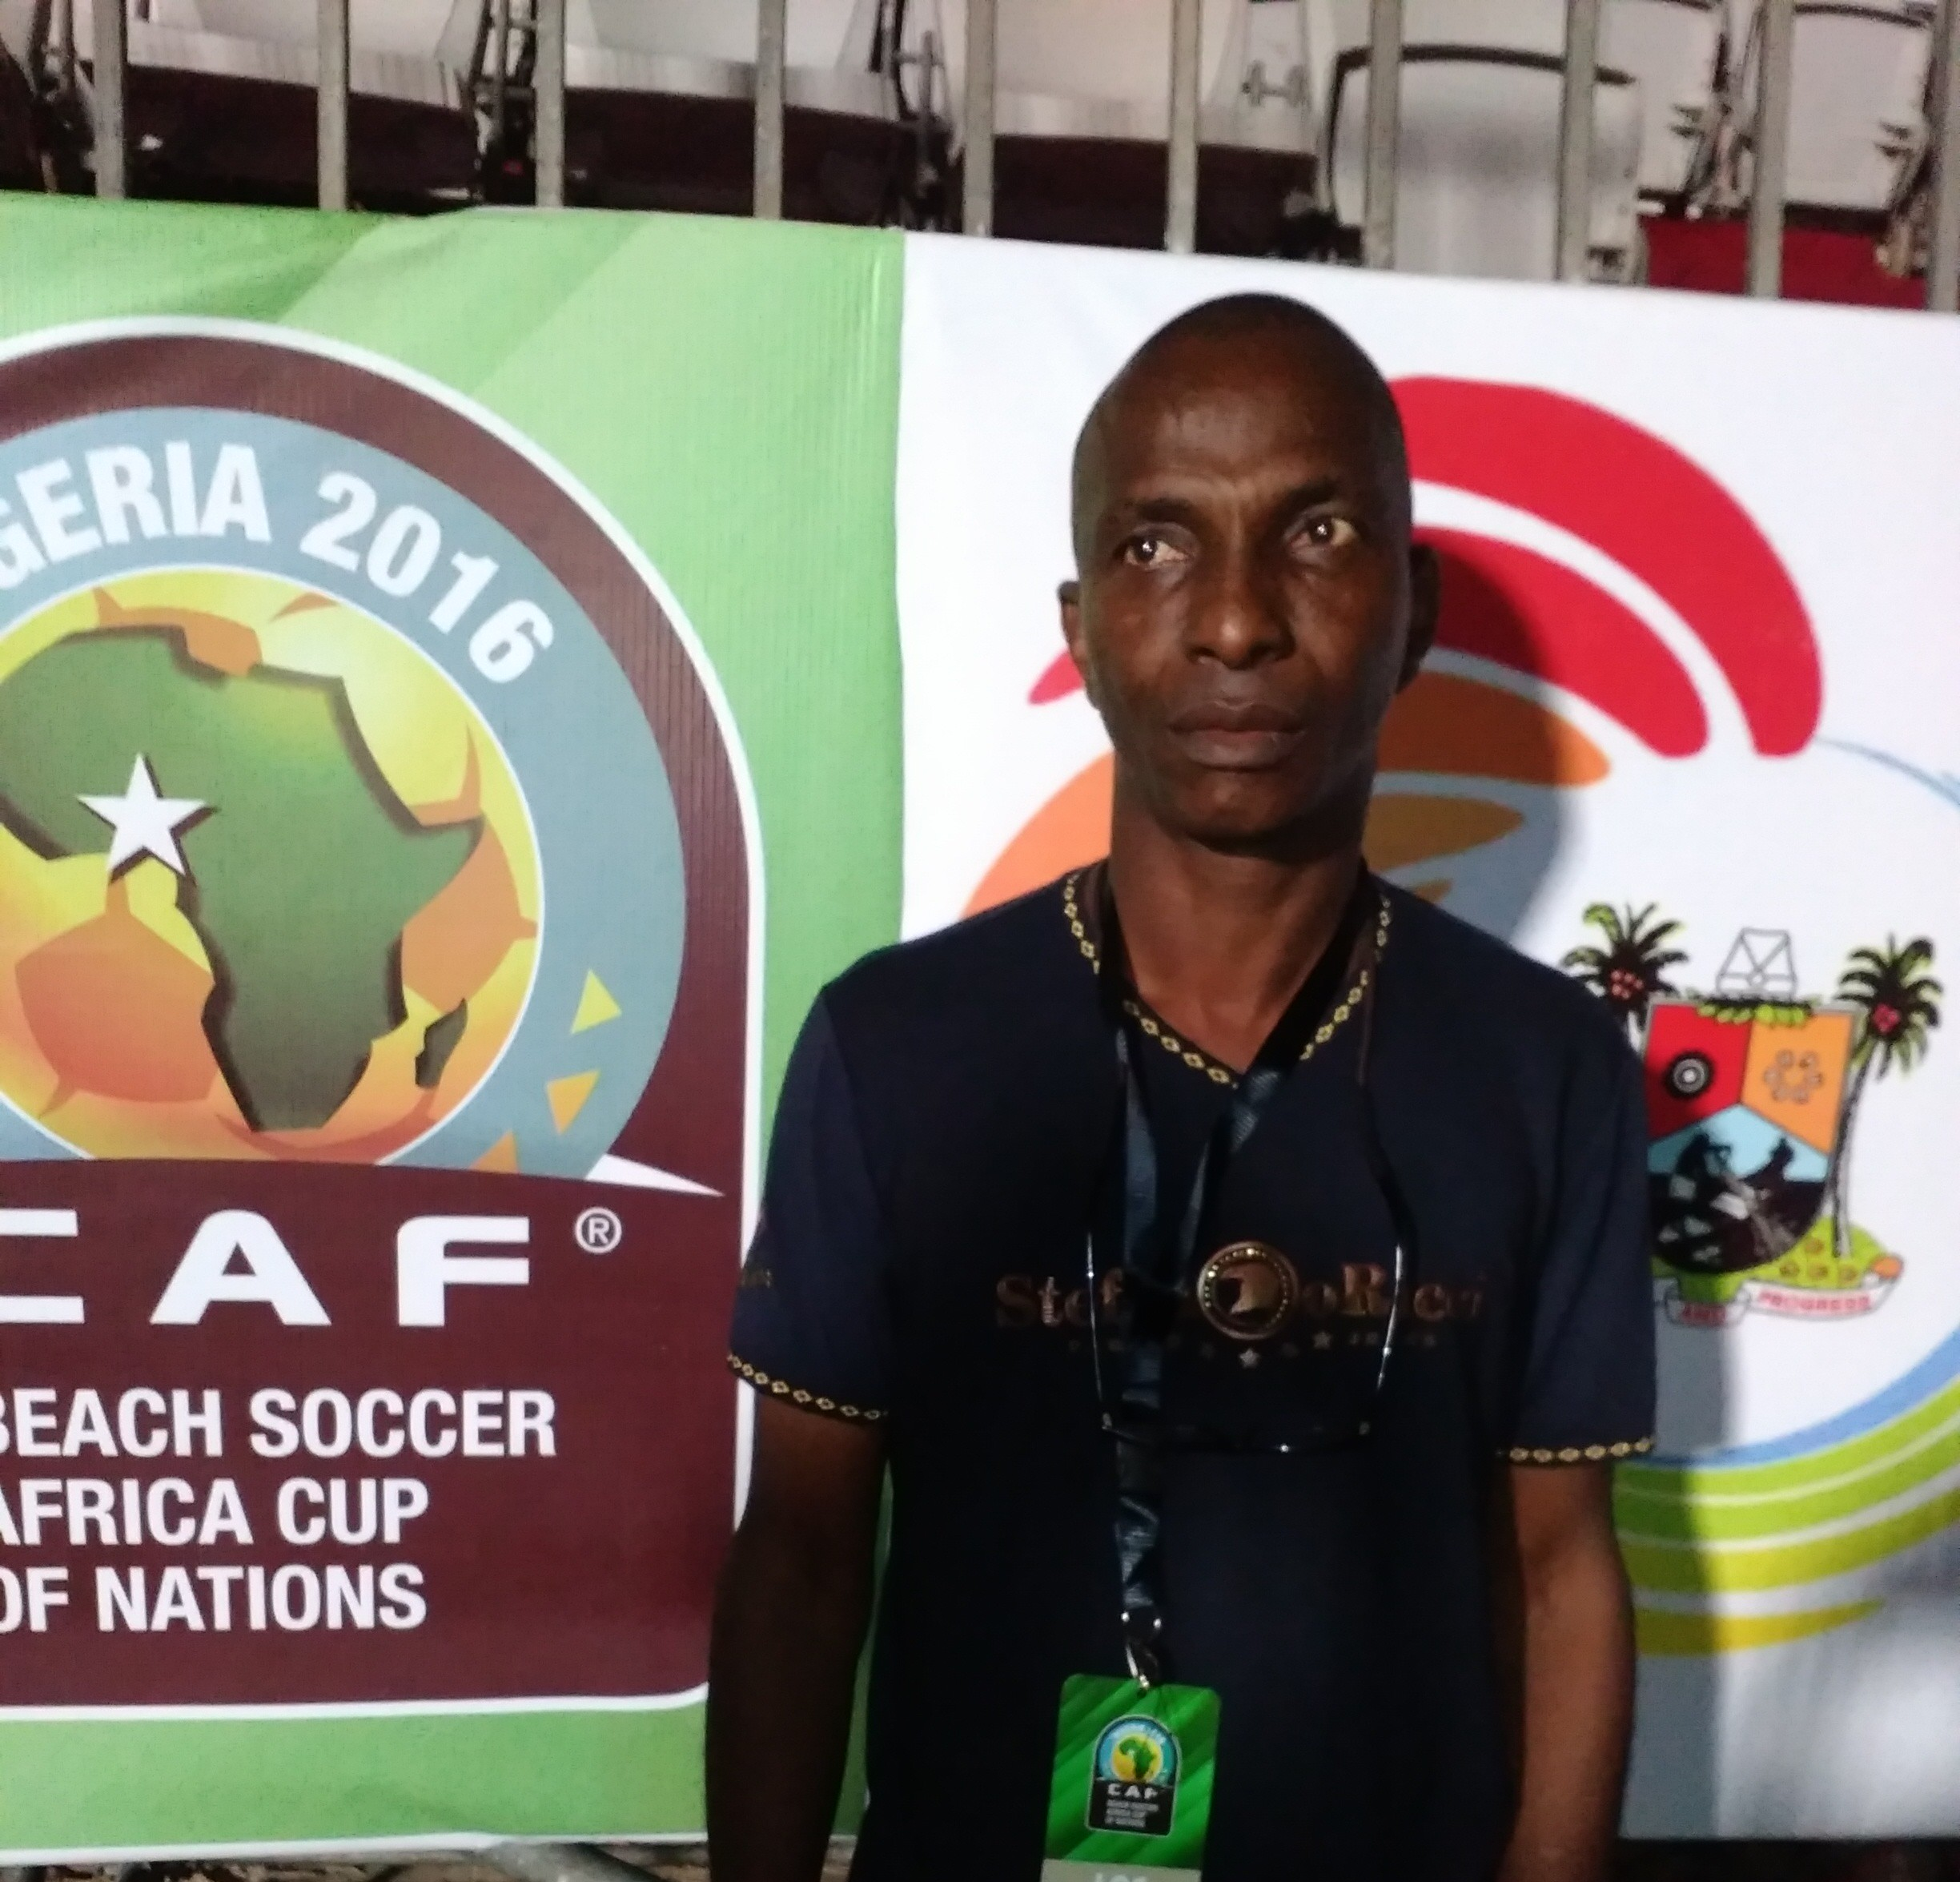 2016 Beach AFCON Chietain: Lagos Hosting Well, Will Do More